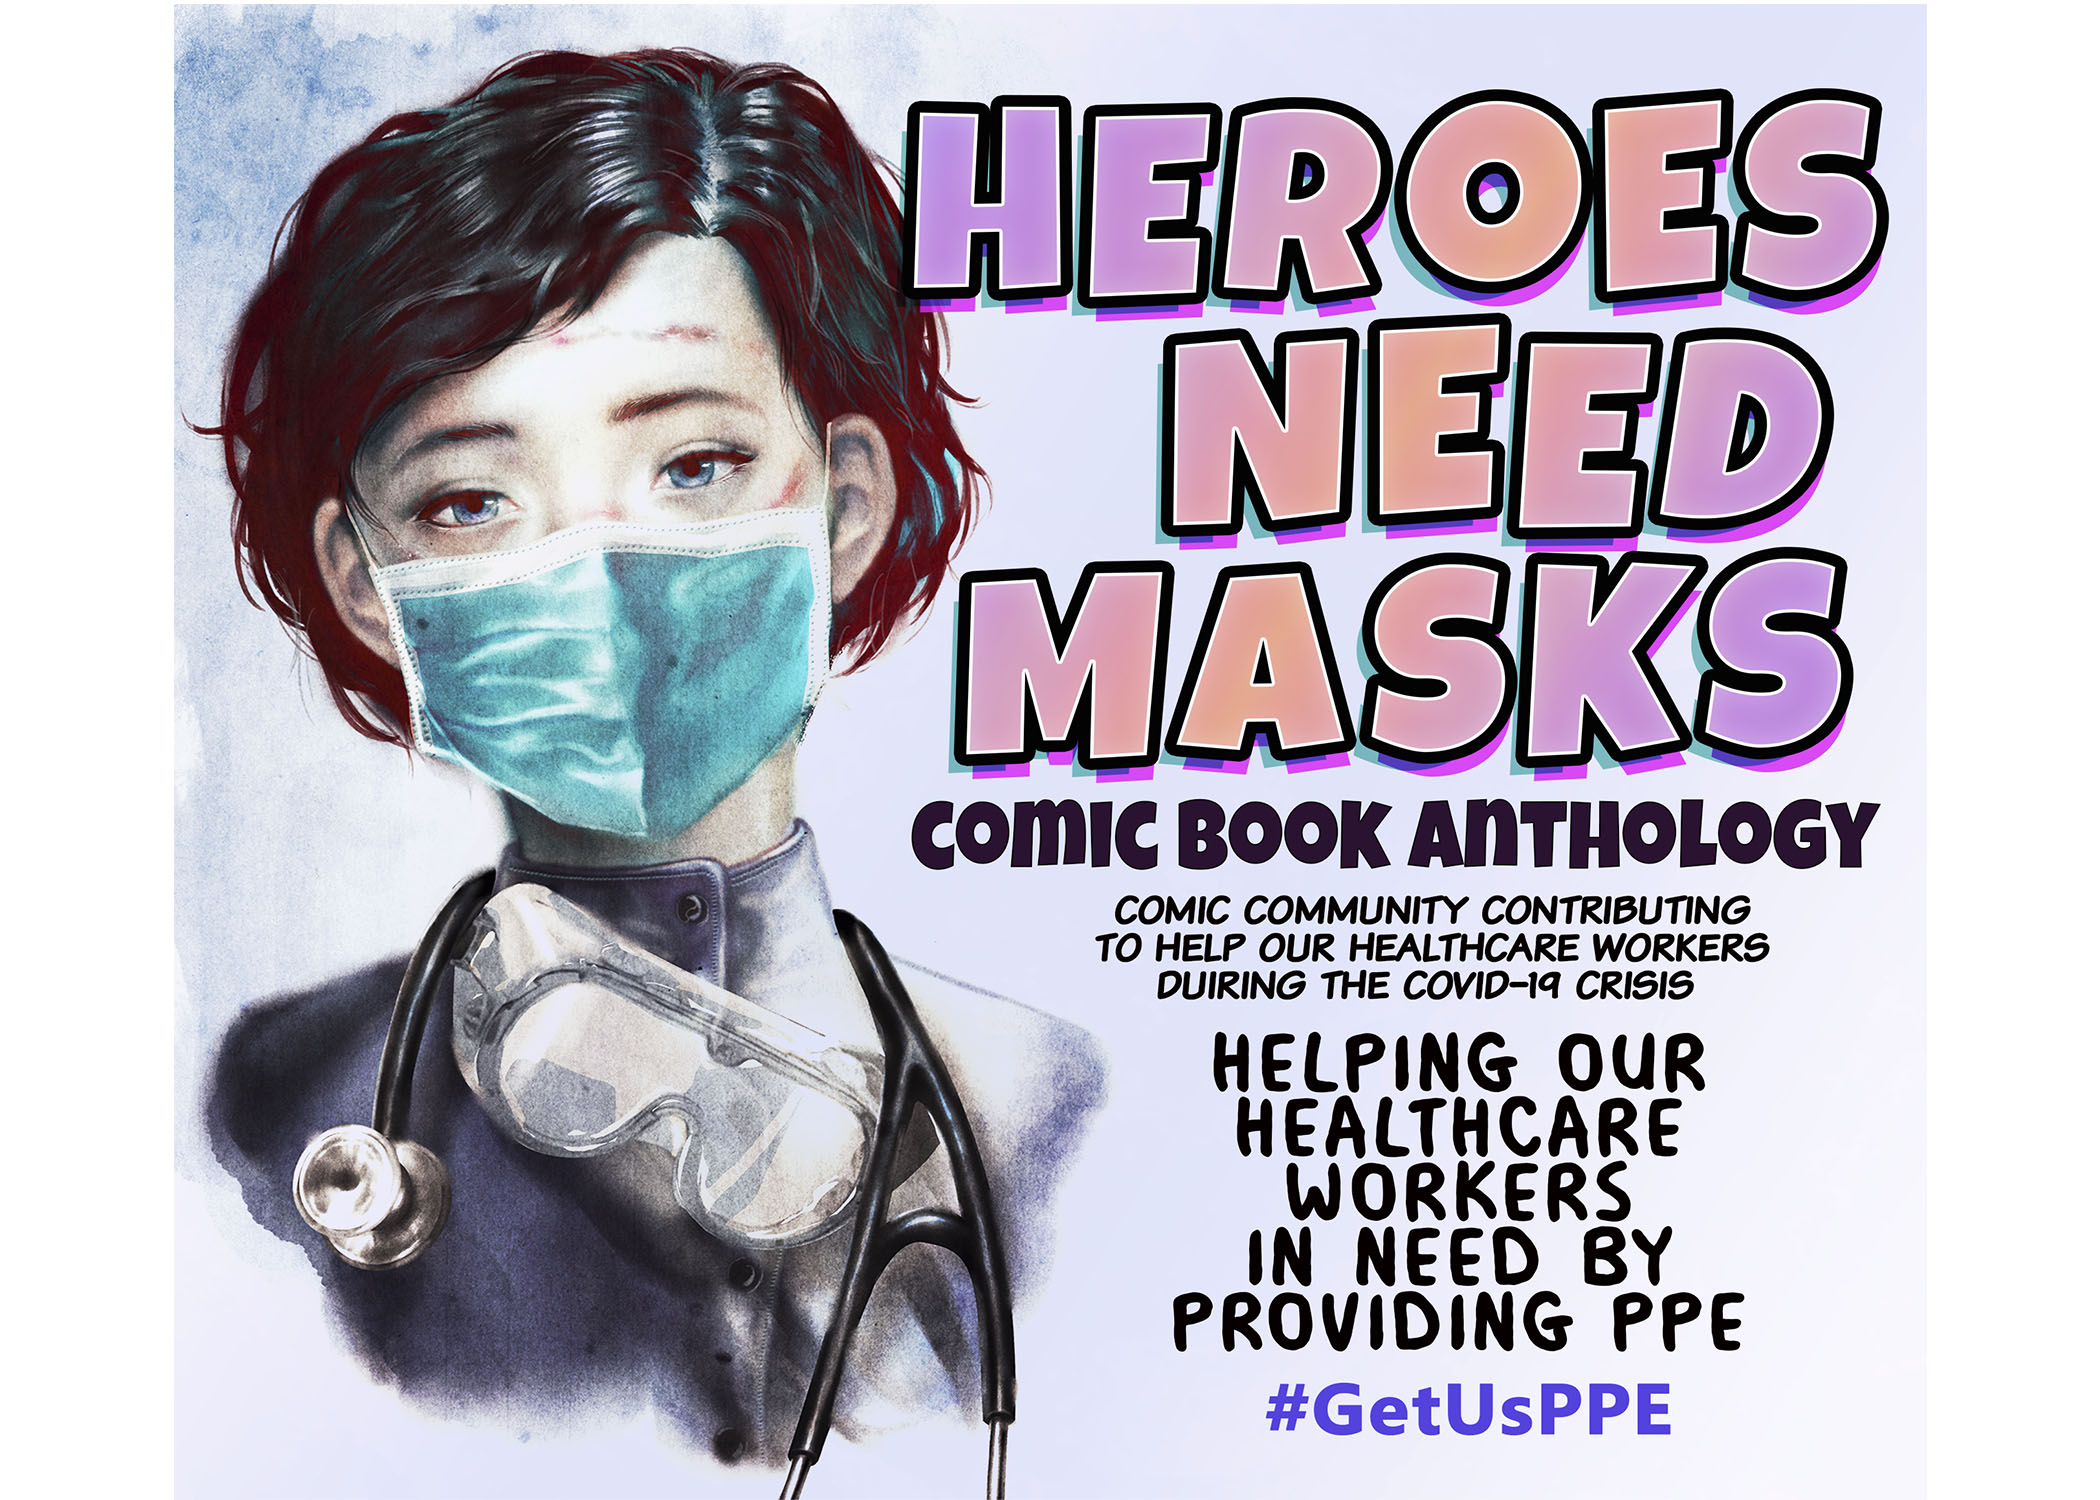 Heroes Need Masks